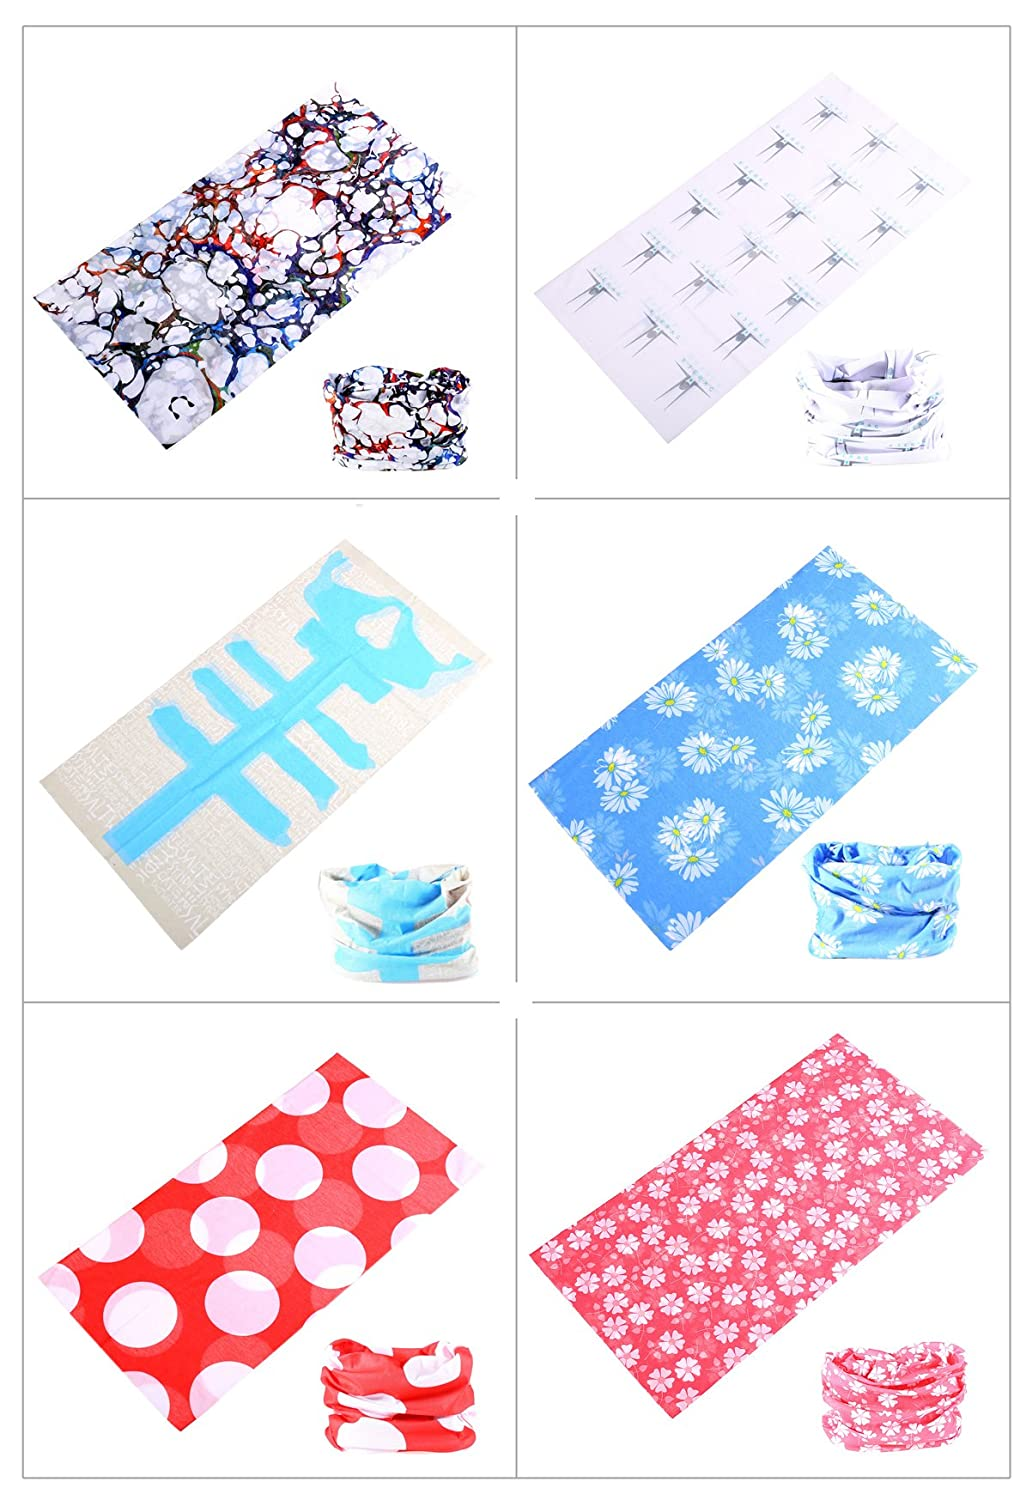 Headscarves Mask High Elastic Womens and Mens Headbands with UV Resistance Headwear KINGREE 9PCS/&6PCS Outdoor Magic Scarf